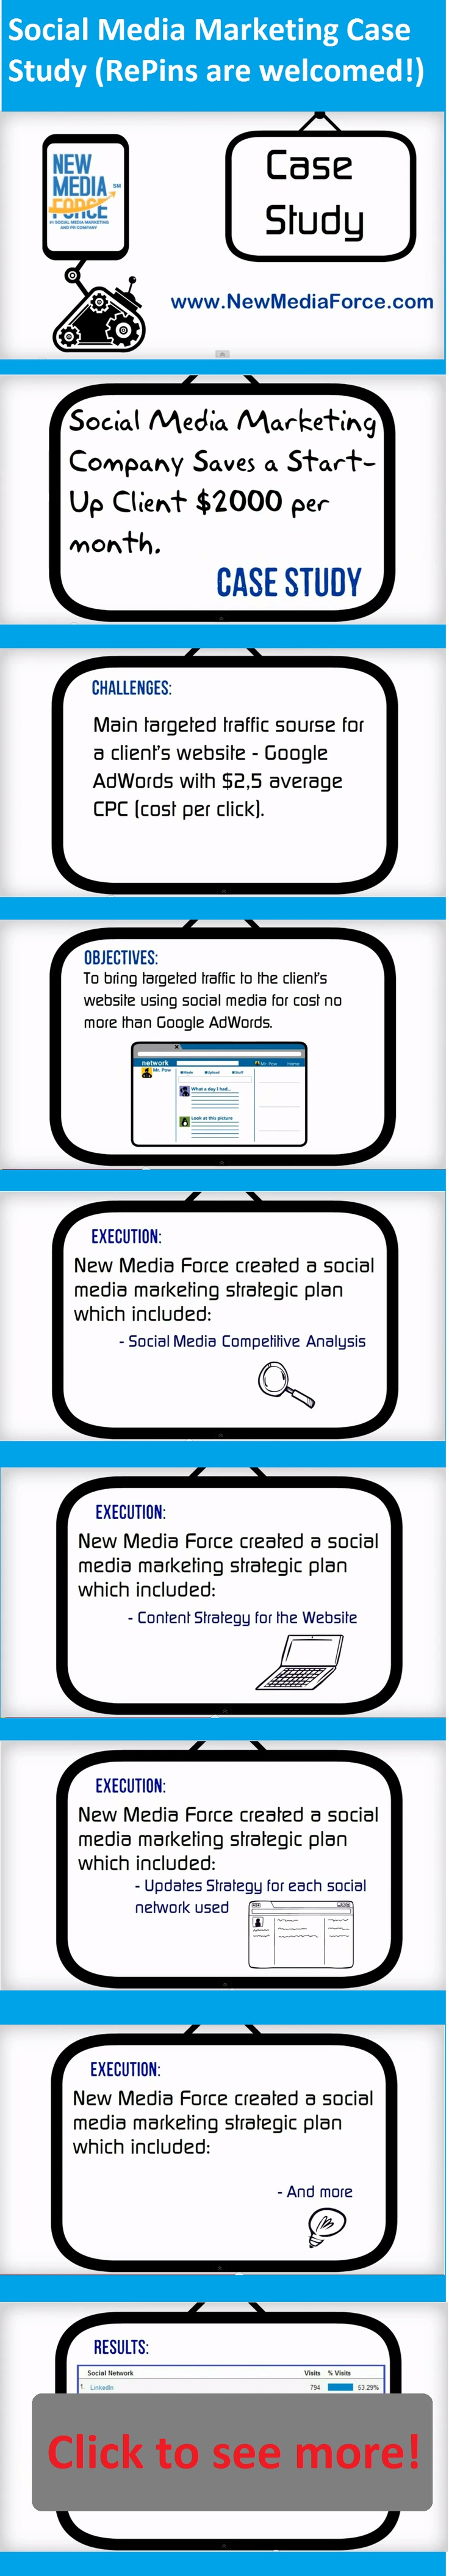 #SocialMediaMarketing #CaseStudy. Watch and read the full version here: http://newmediaforce.com/blog/social-media-marketing-company-saves-a-start-up-client-2000-per-month-case-study/